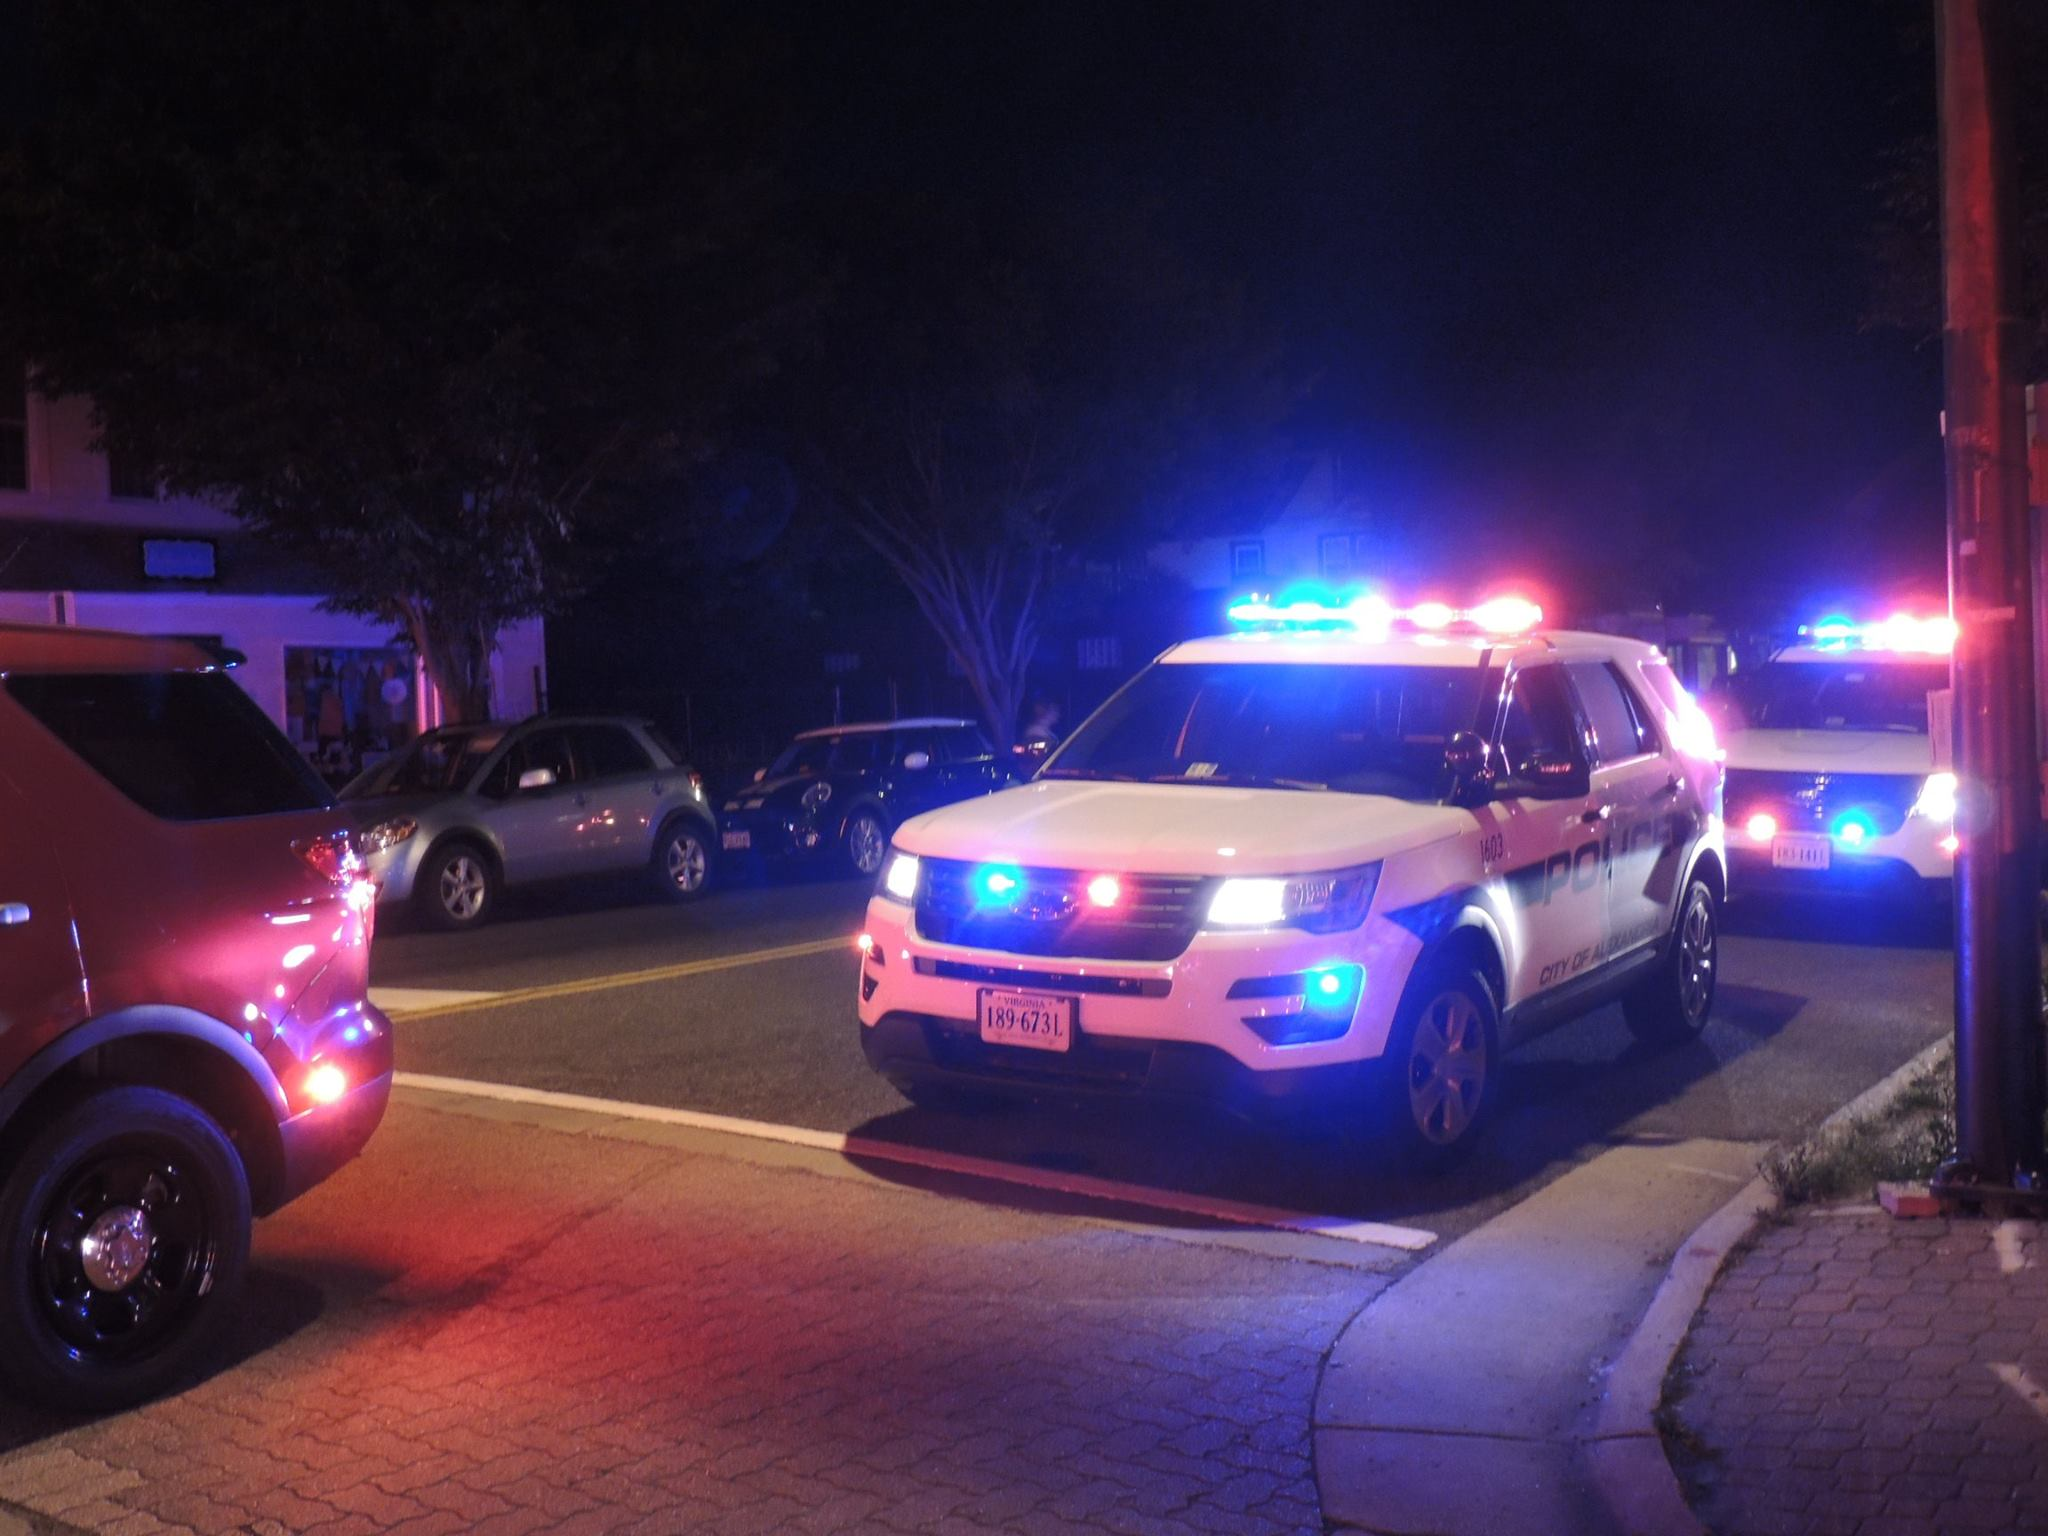 Here's the latest Alexandria Virginia crime report. These are incidents reported bythe Alexandria Police Departmentthat occurred in the last week.